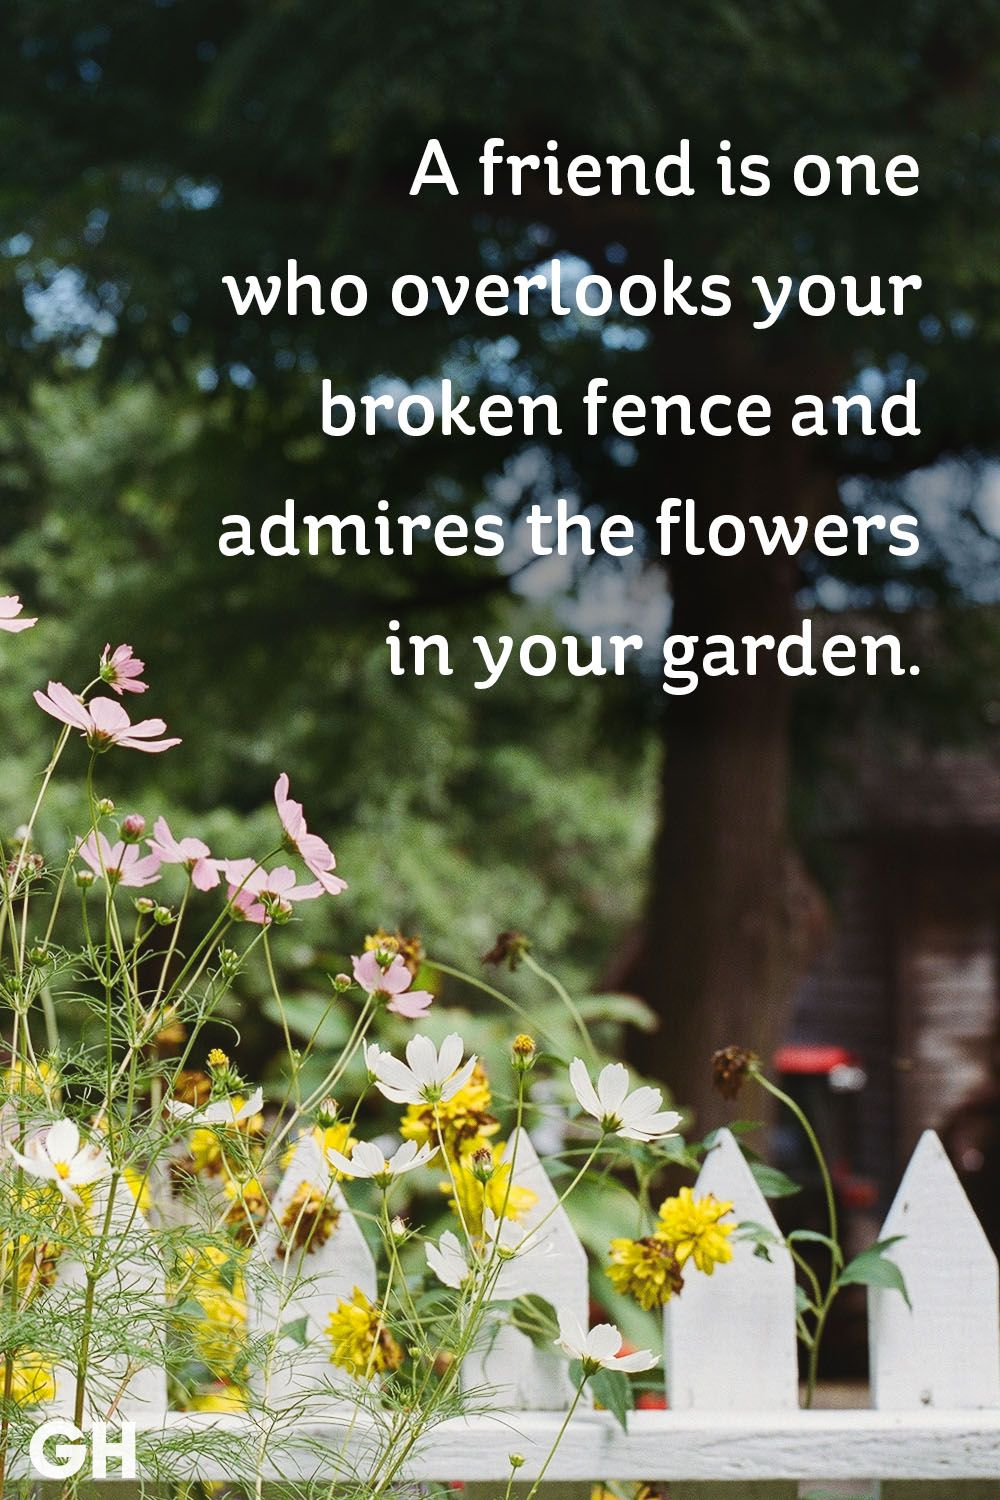 friendship flowers in garden quote